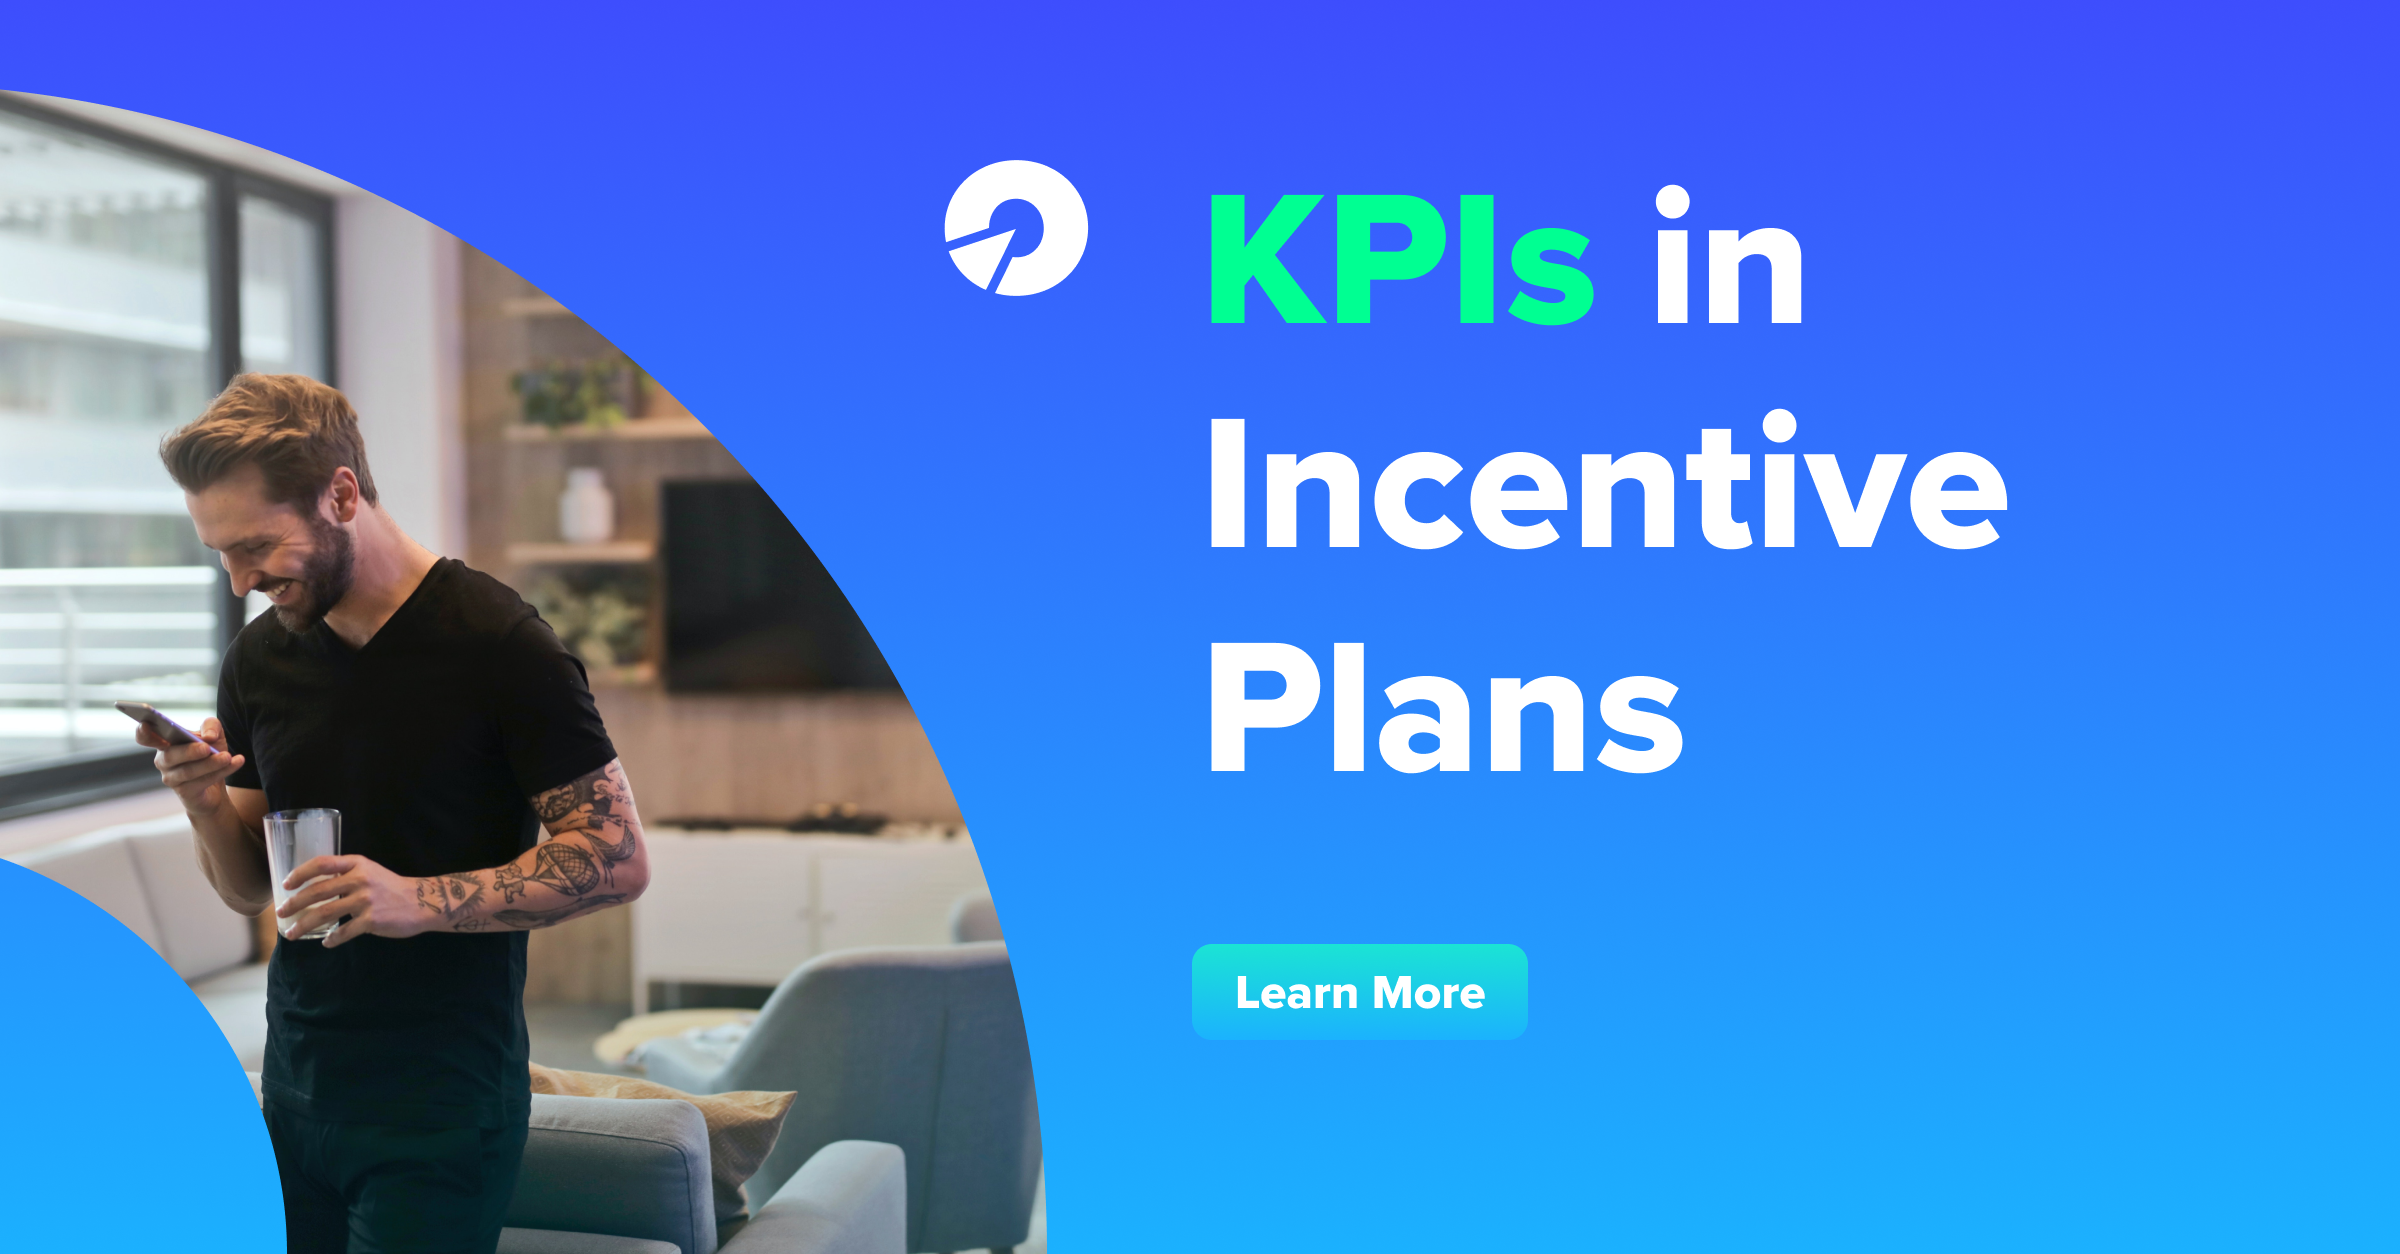 KPIs in Incentive Plans